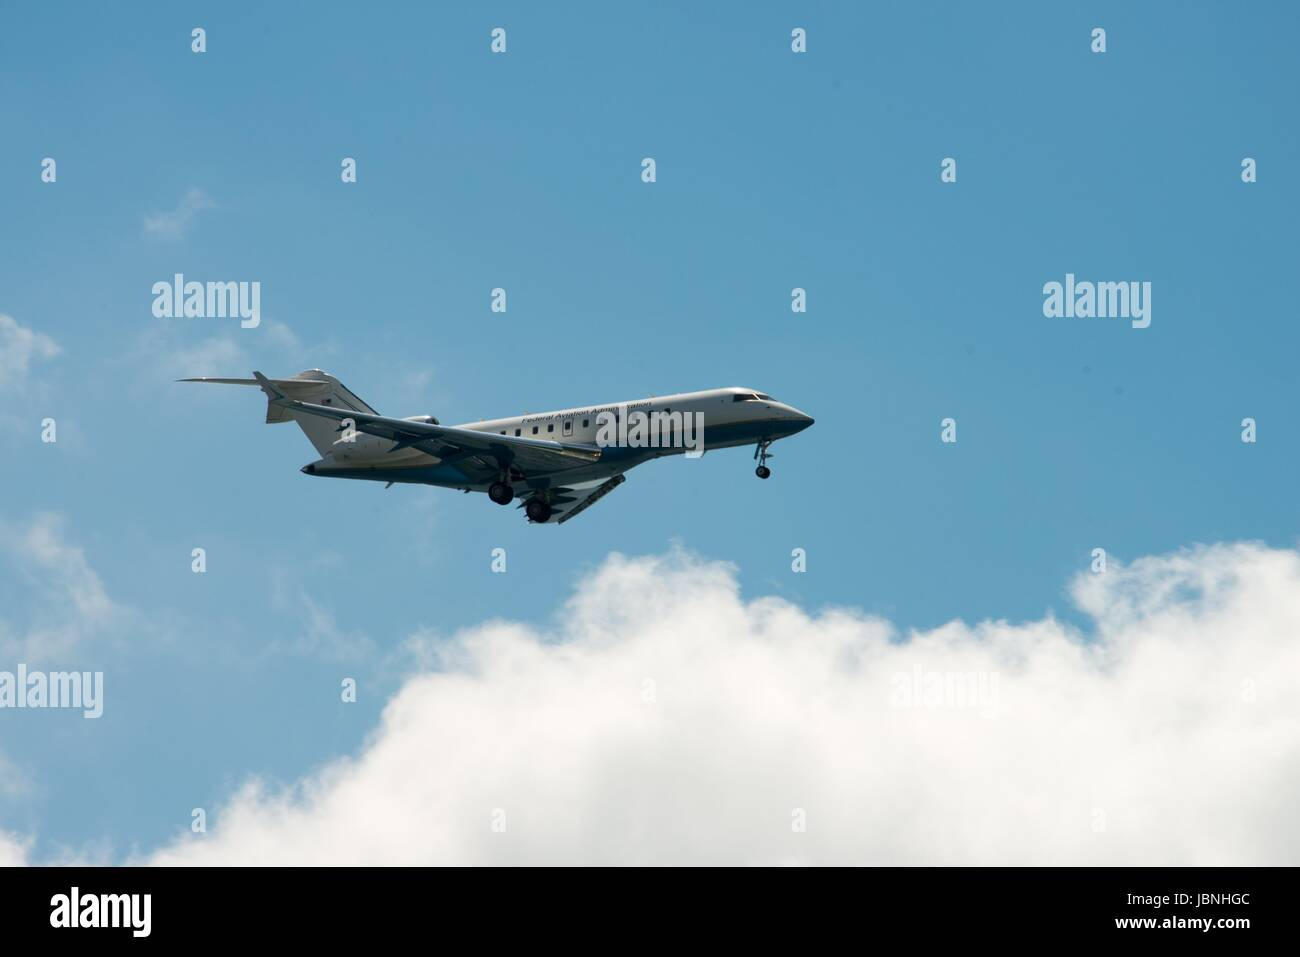 ATLANTIC CITY, NJ - AUGUST 17: Federal Avation Administration airplane at the Atlantic City Air Show on August 17, - Stock Image